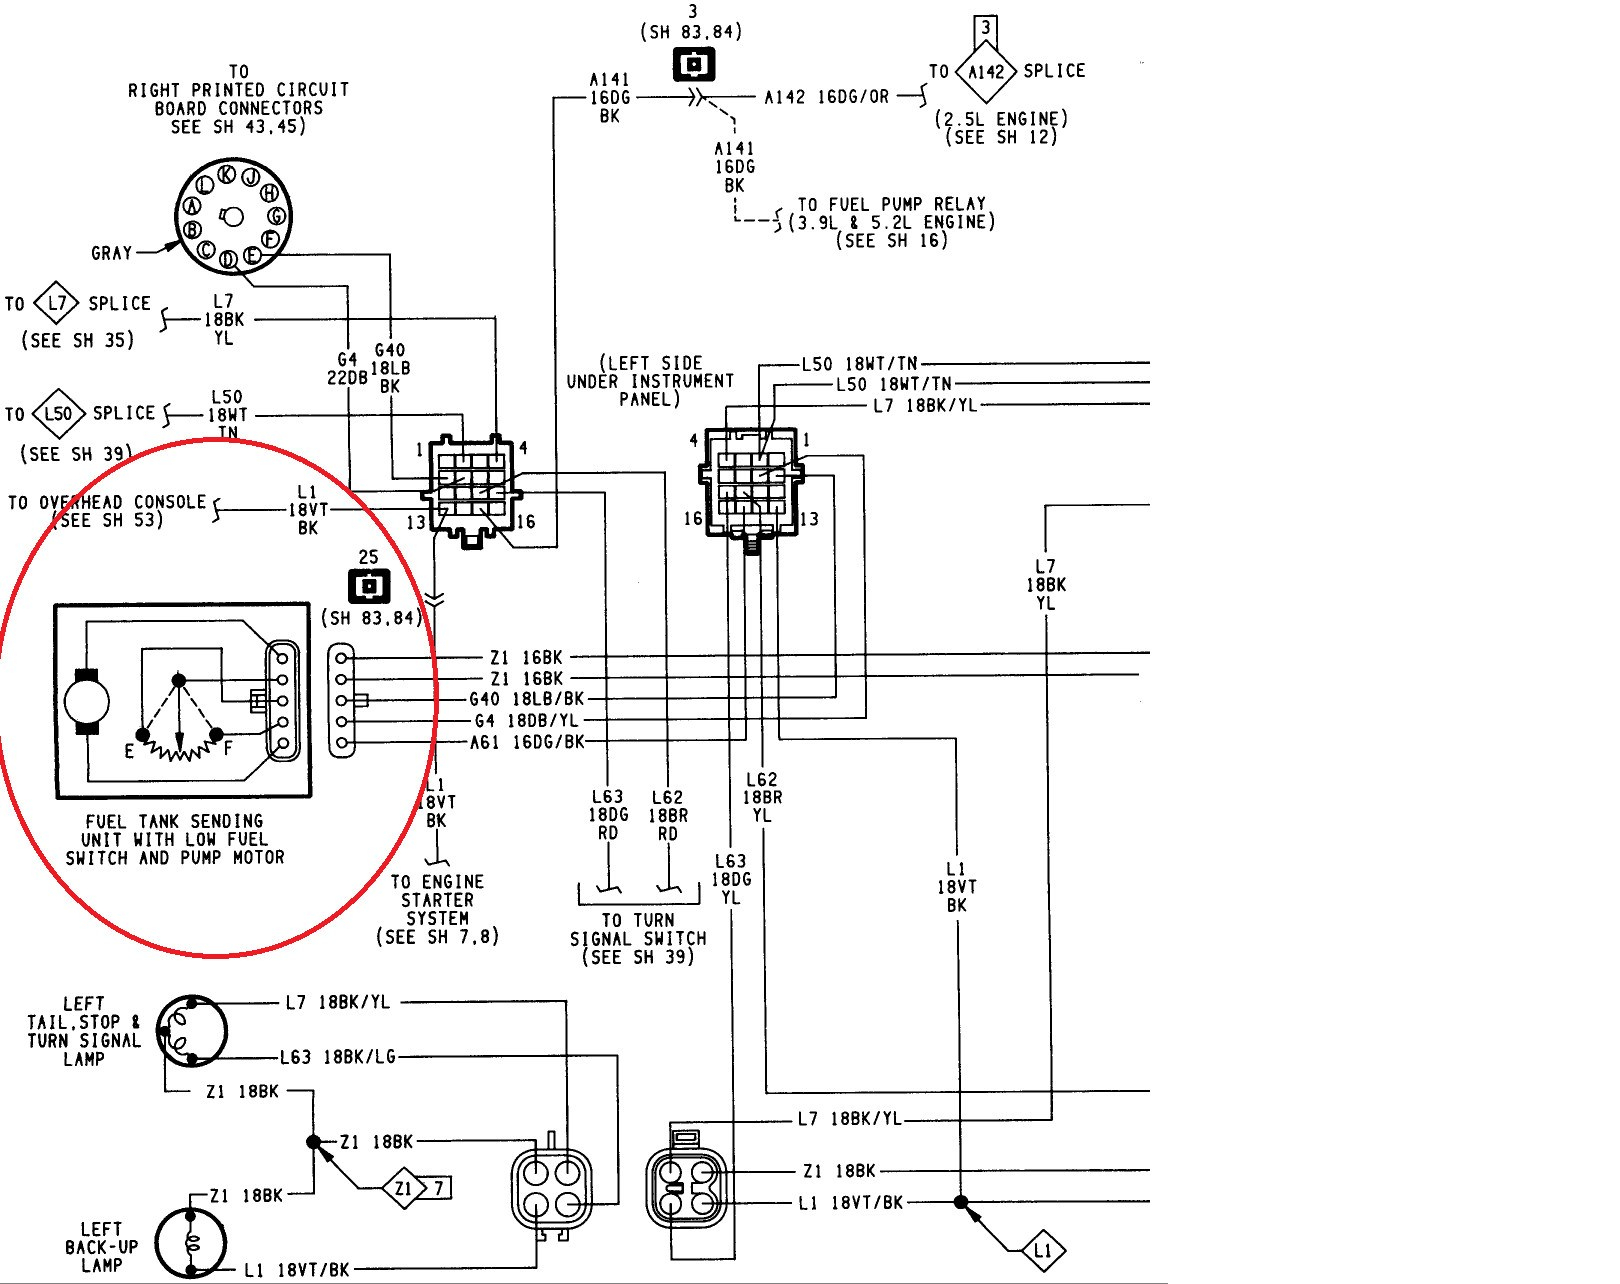 2005 Ford F 150 Wiring Schematic Fuel Sending Unit | Wiring Diagram - Gm Fuel Sending Unit Wiring Diagram